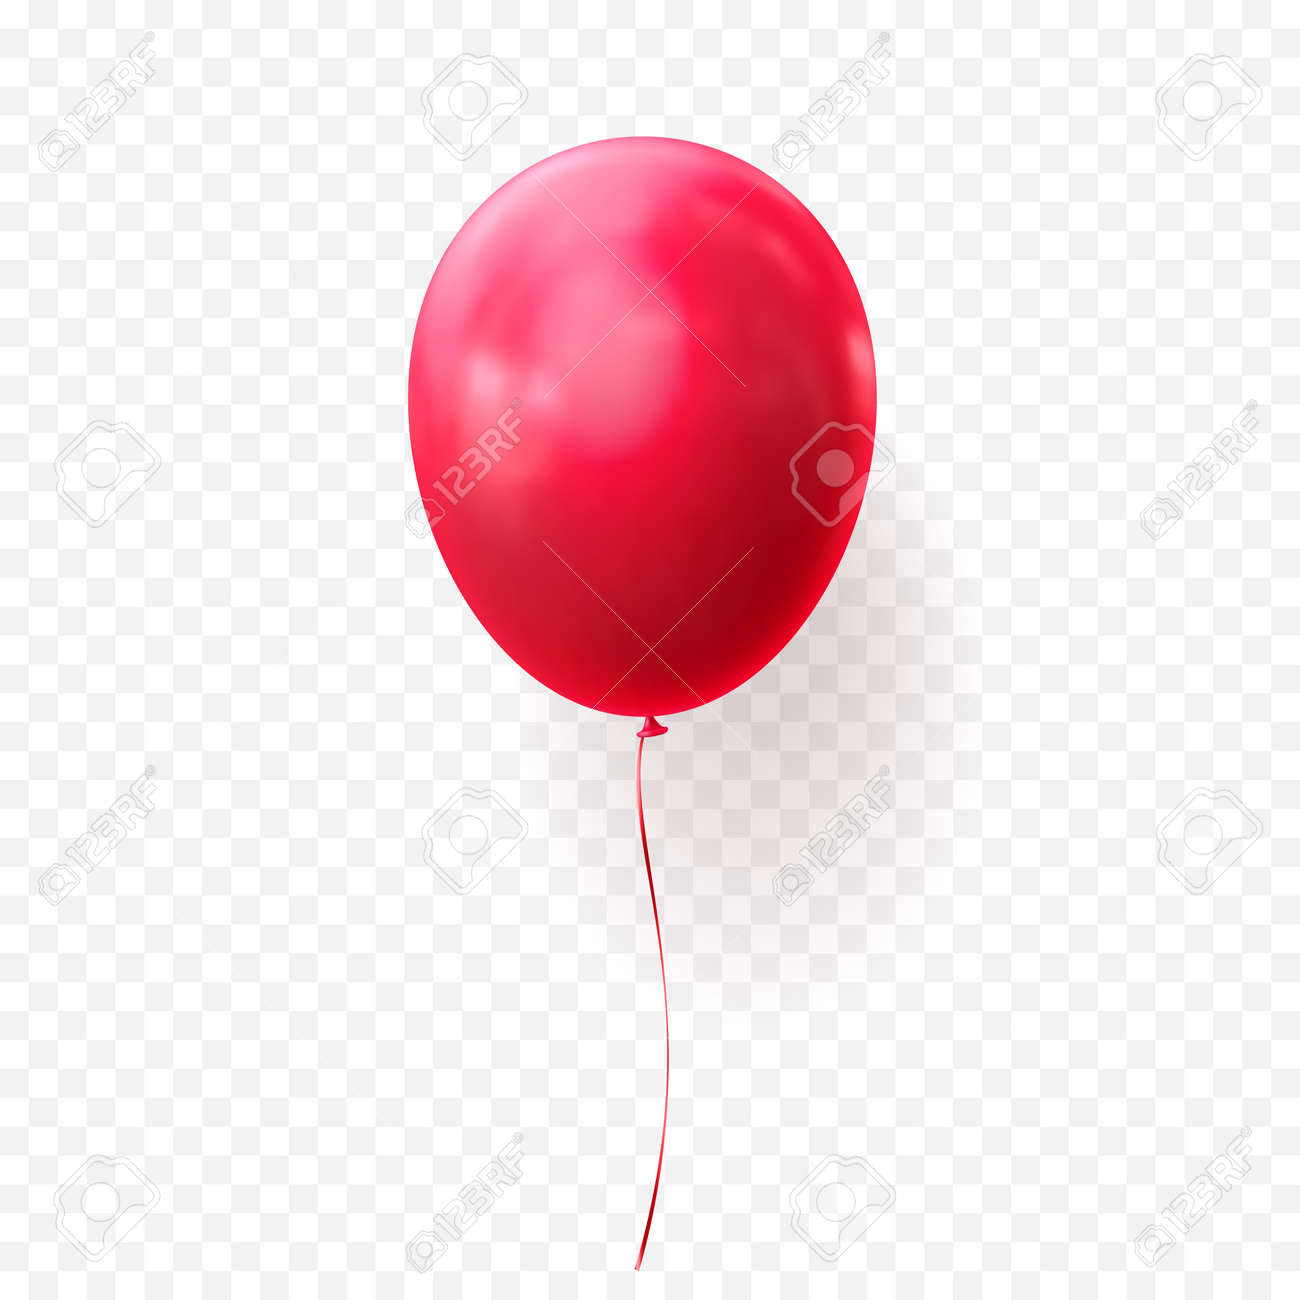 Red Balloon Vector Illustration On Transparent Background Glossy